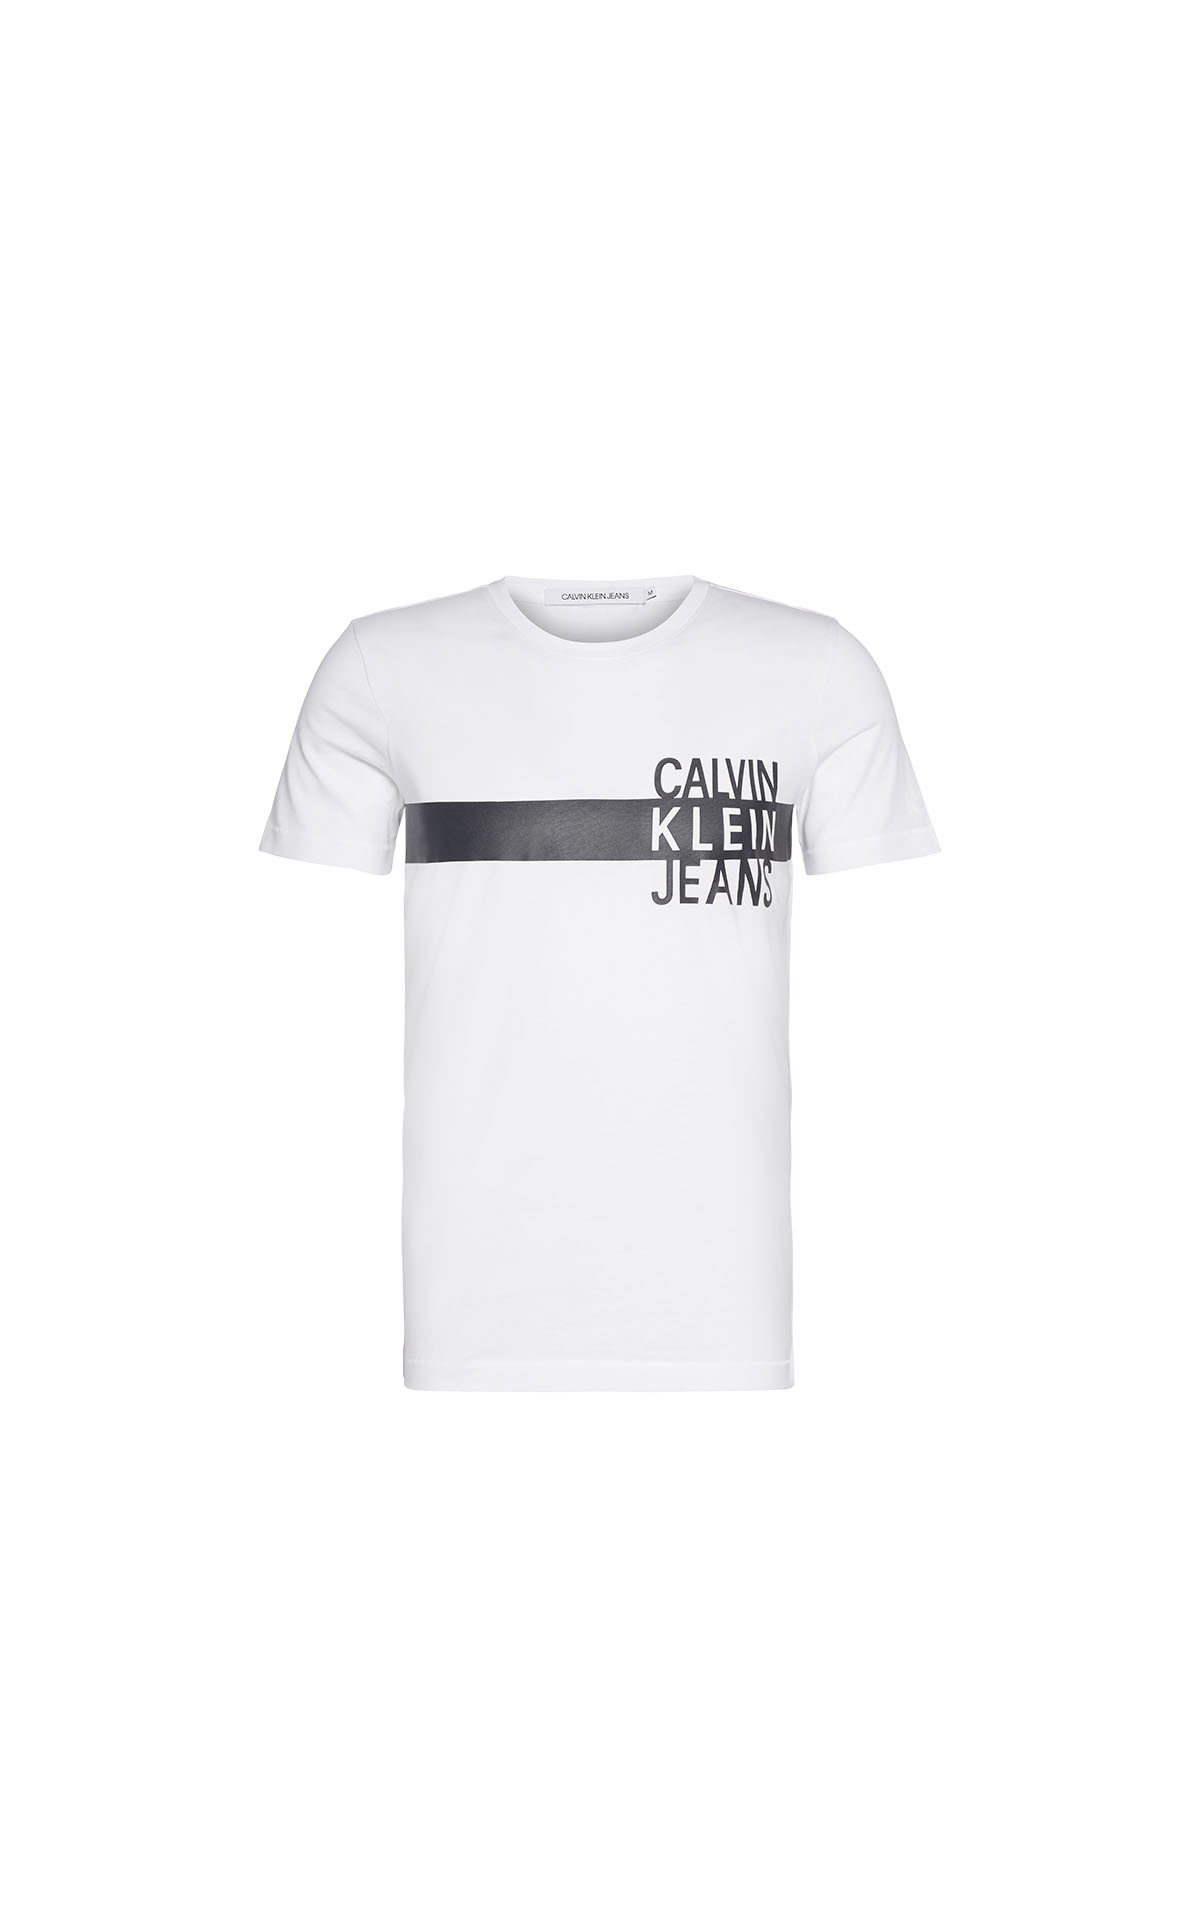 Calvin Klein Men's eo stacked logo tee at The Bicester Village Shopping Collection